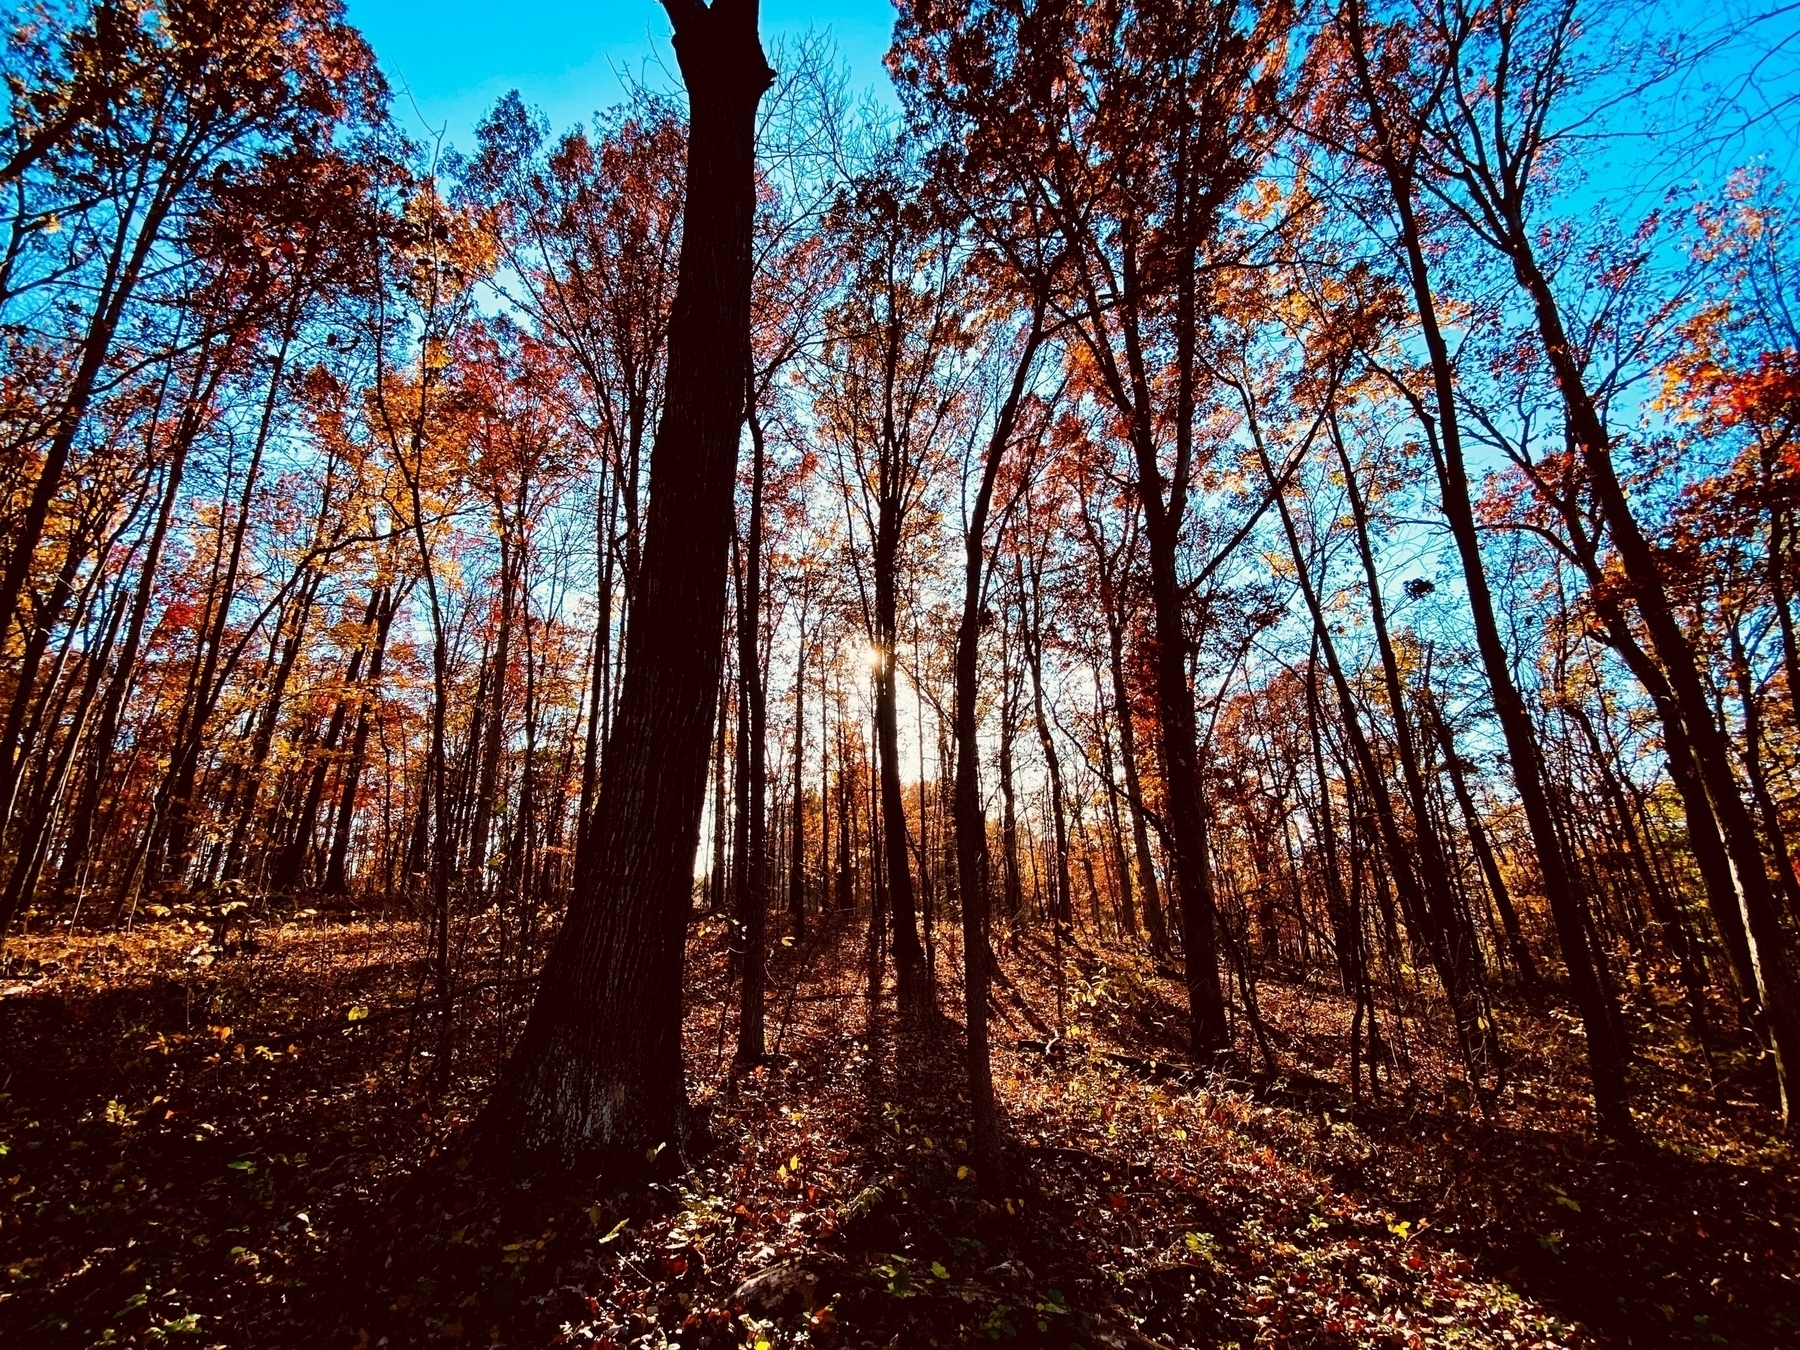 Forrest of trees in Fall